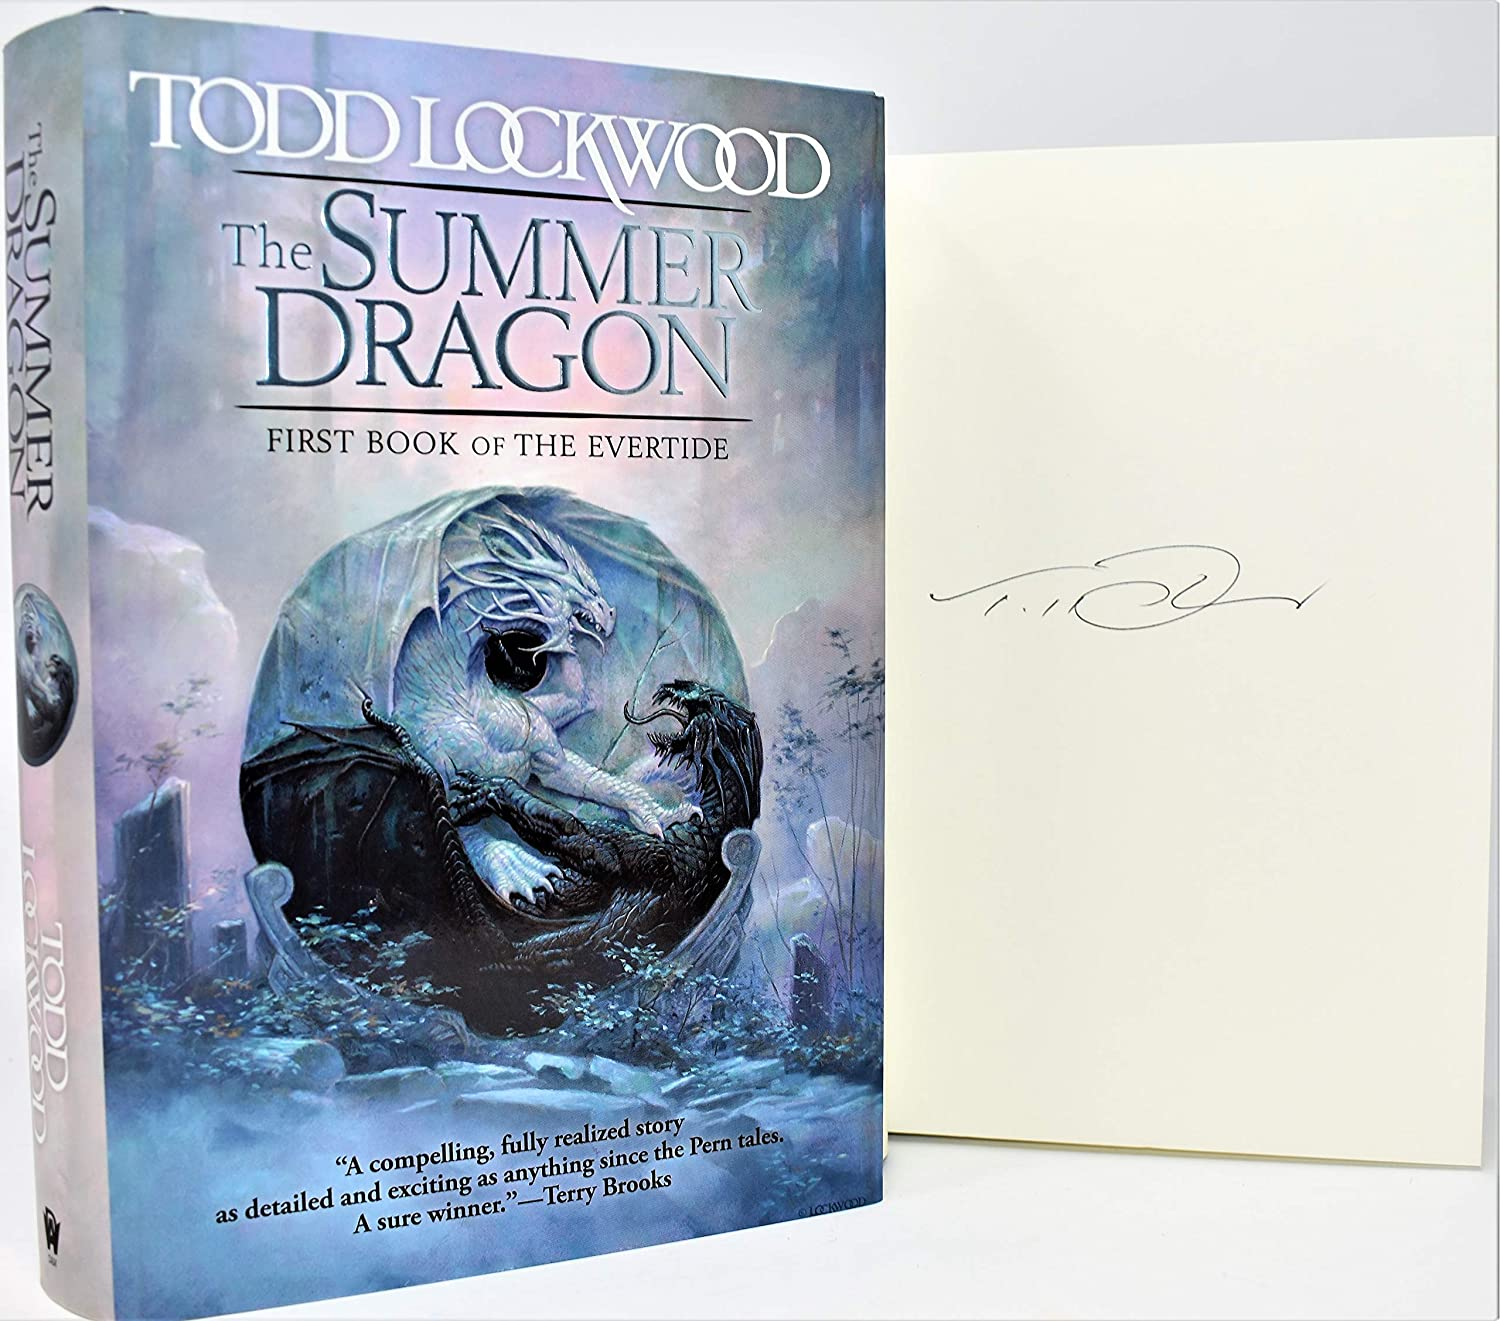 The Summer Dragon AUTOGRAPHED by BOOK Lockwood Our shop OFFers Challenge the lowest price of Japan the best service SIGNED Todd